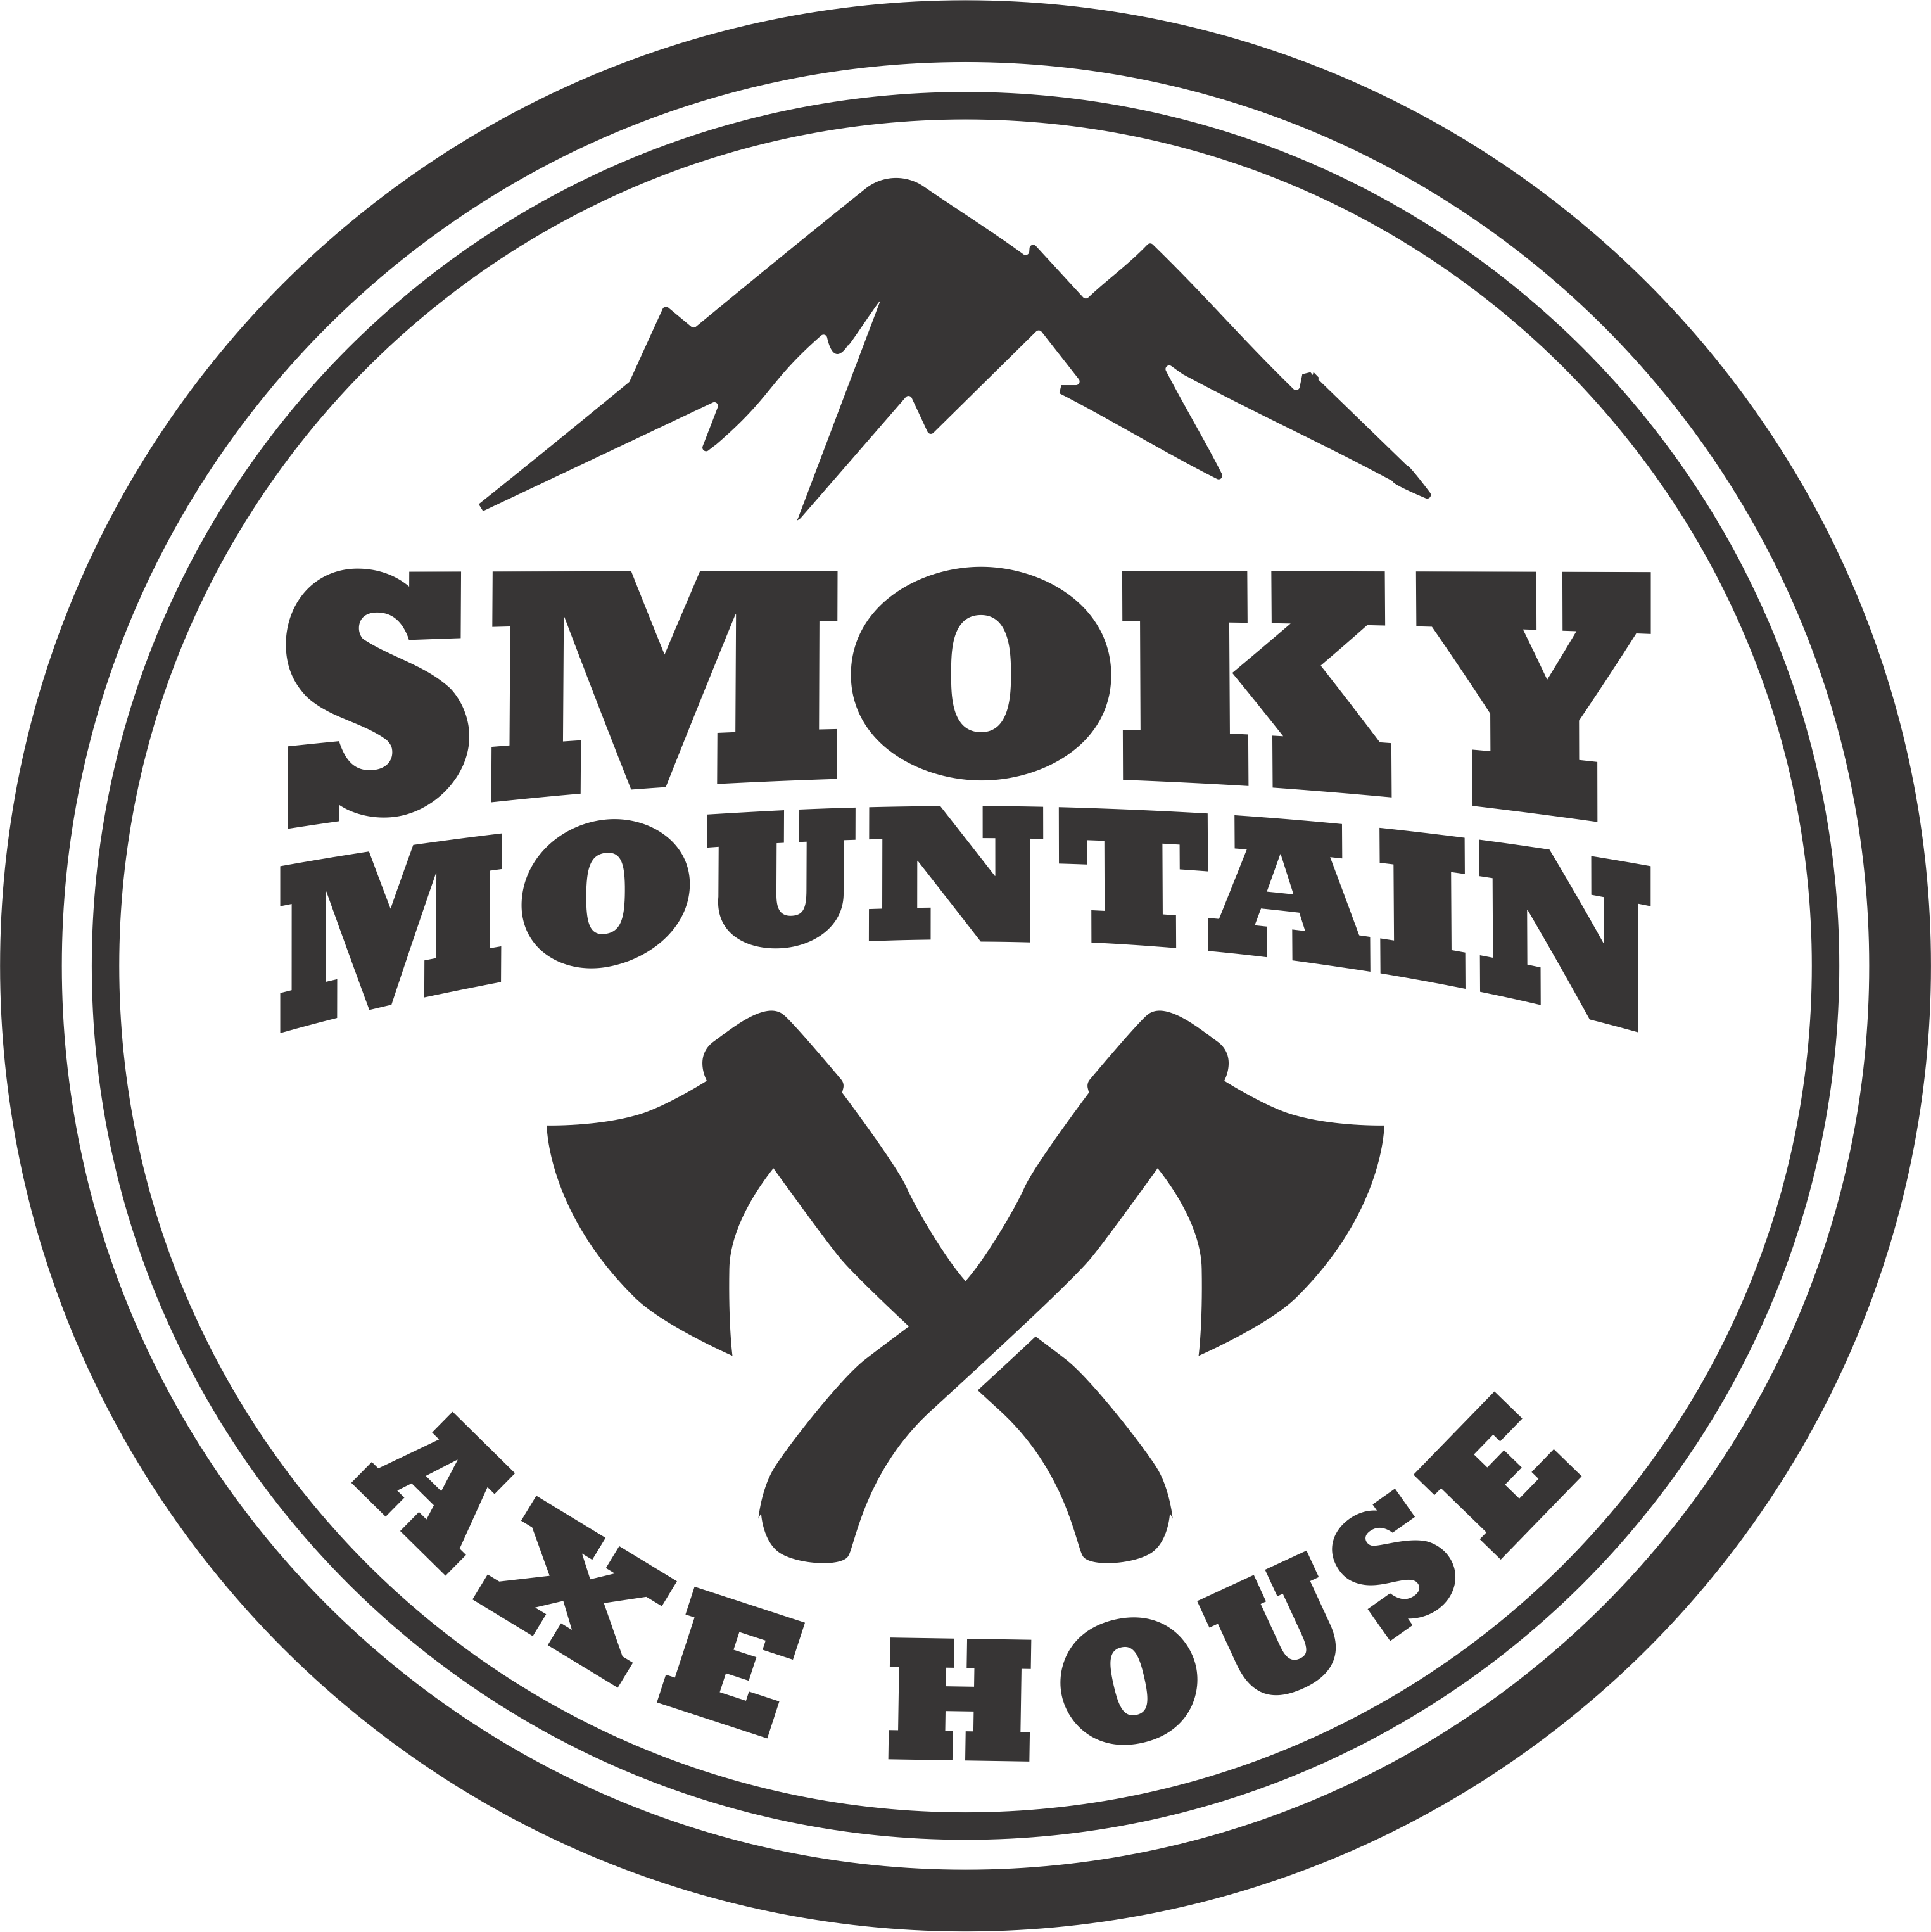 Smoky Mountain Axe House